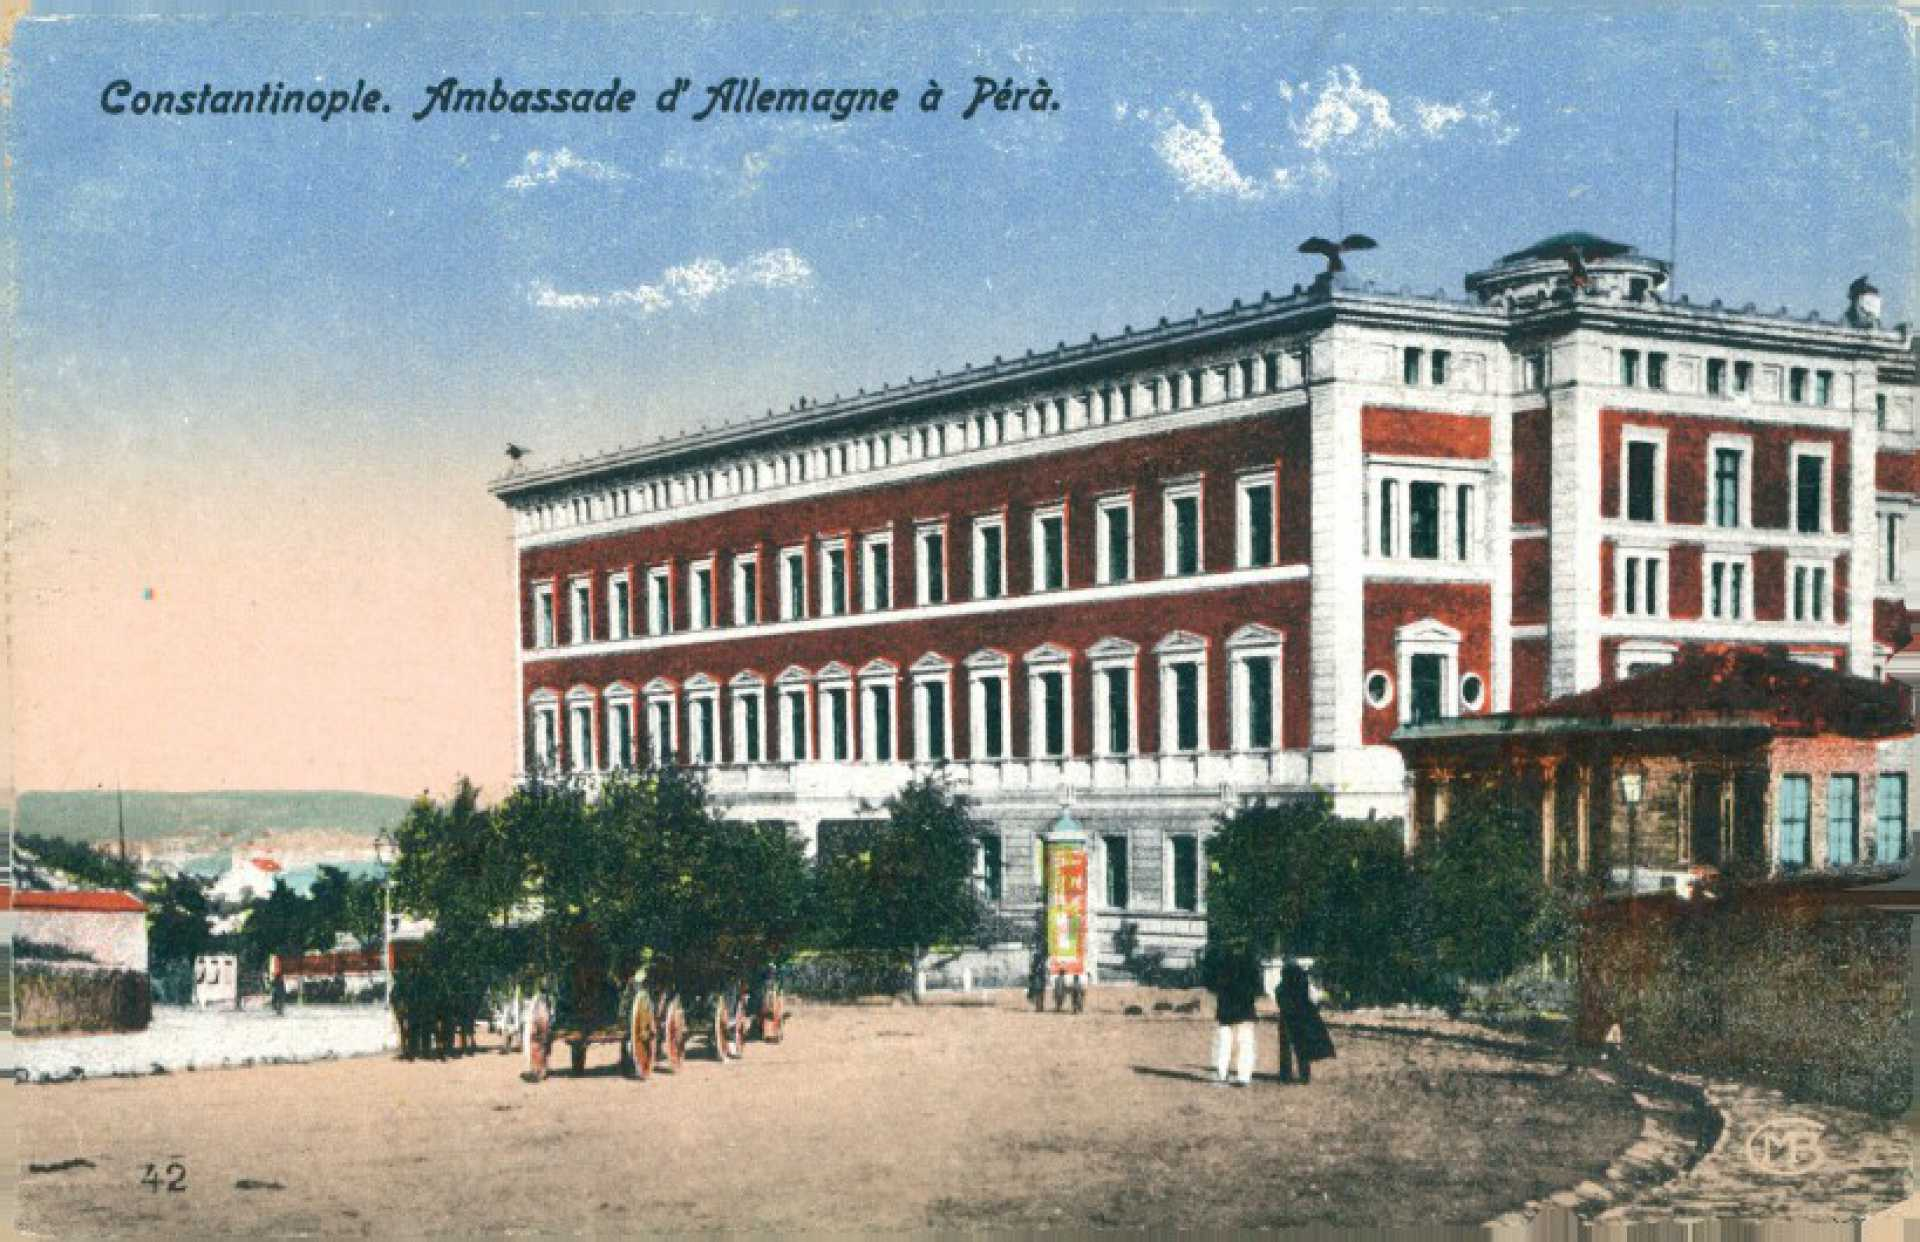 Constantinople. Ambasade d'Allemagne a Pera